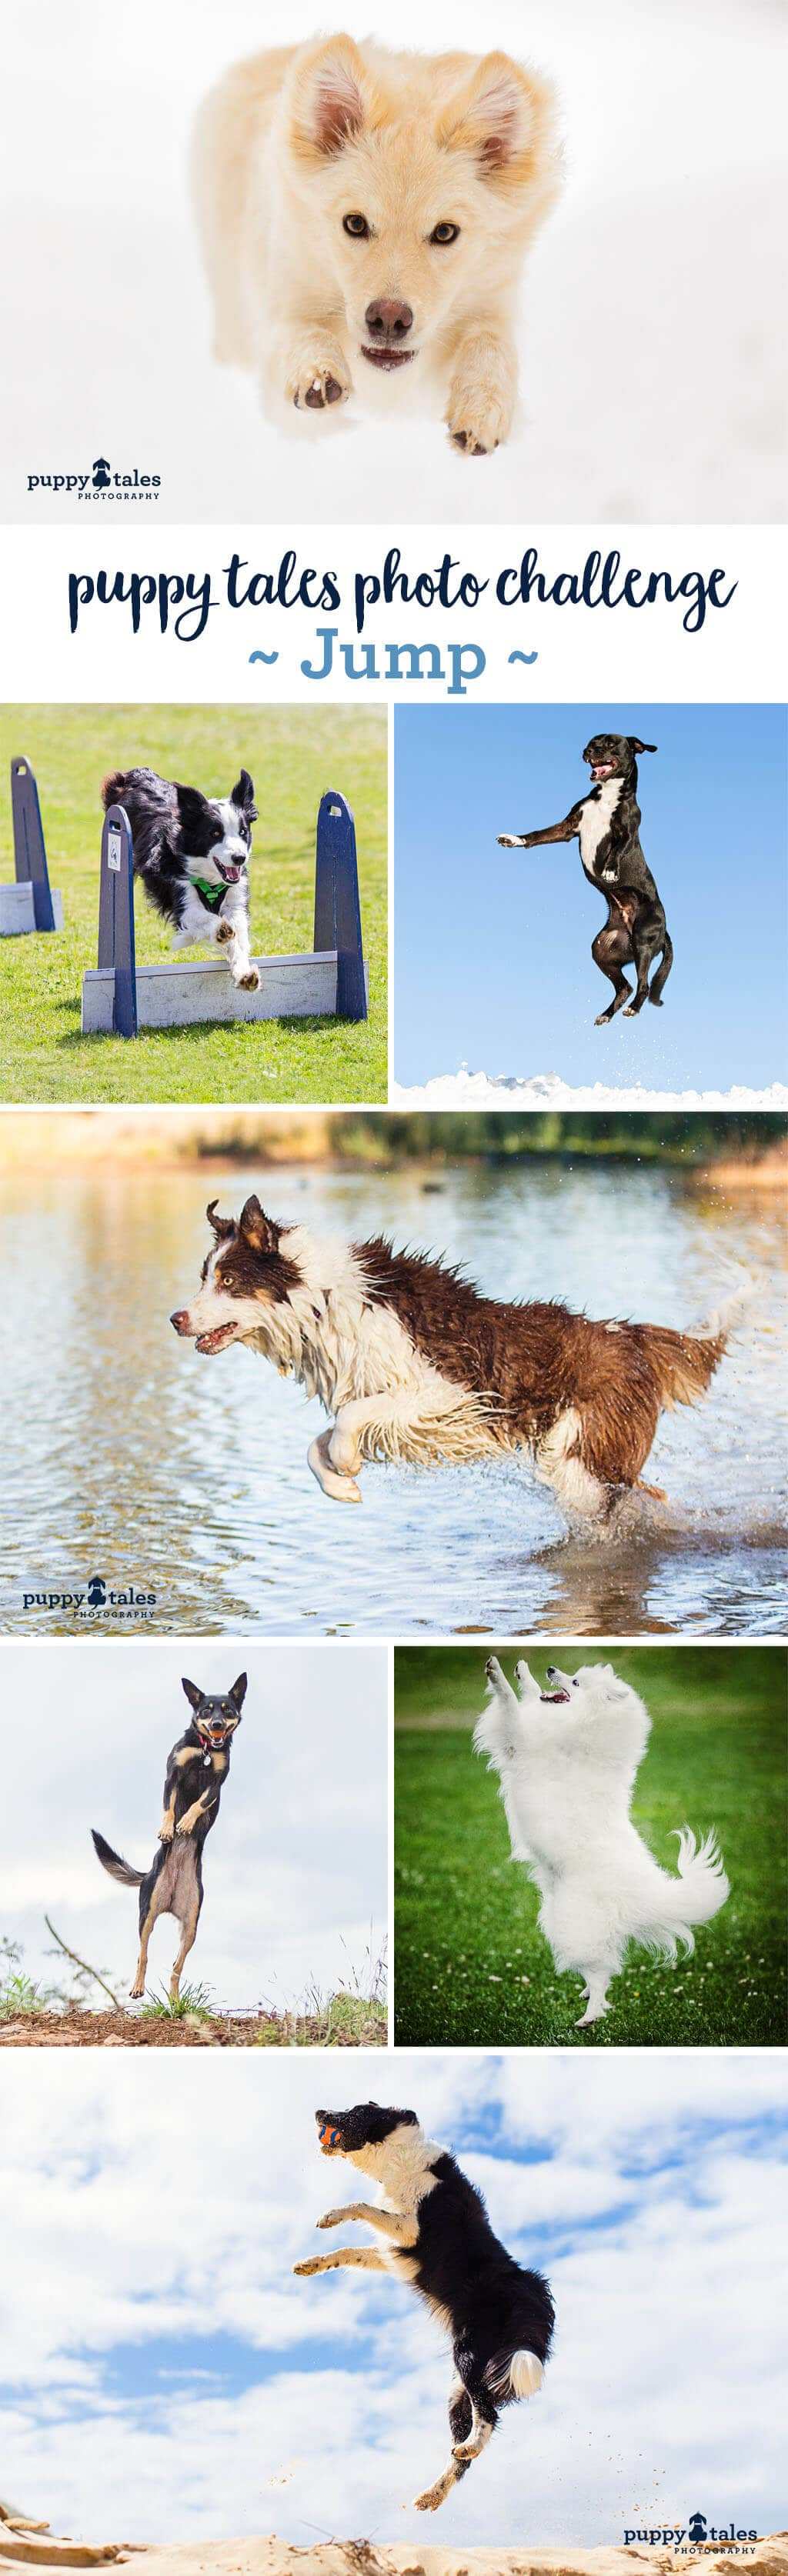 Puppy Tales Photo Challenge ~ Jump